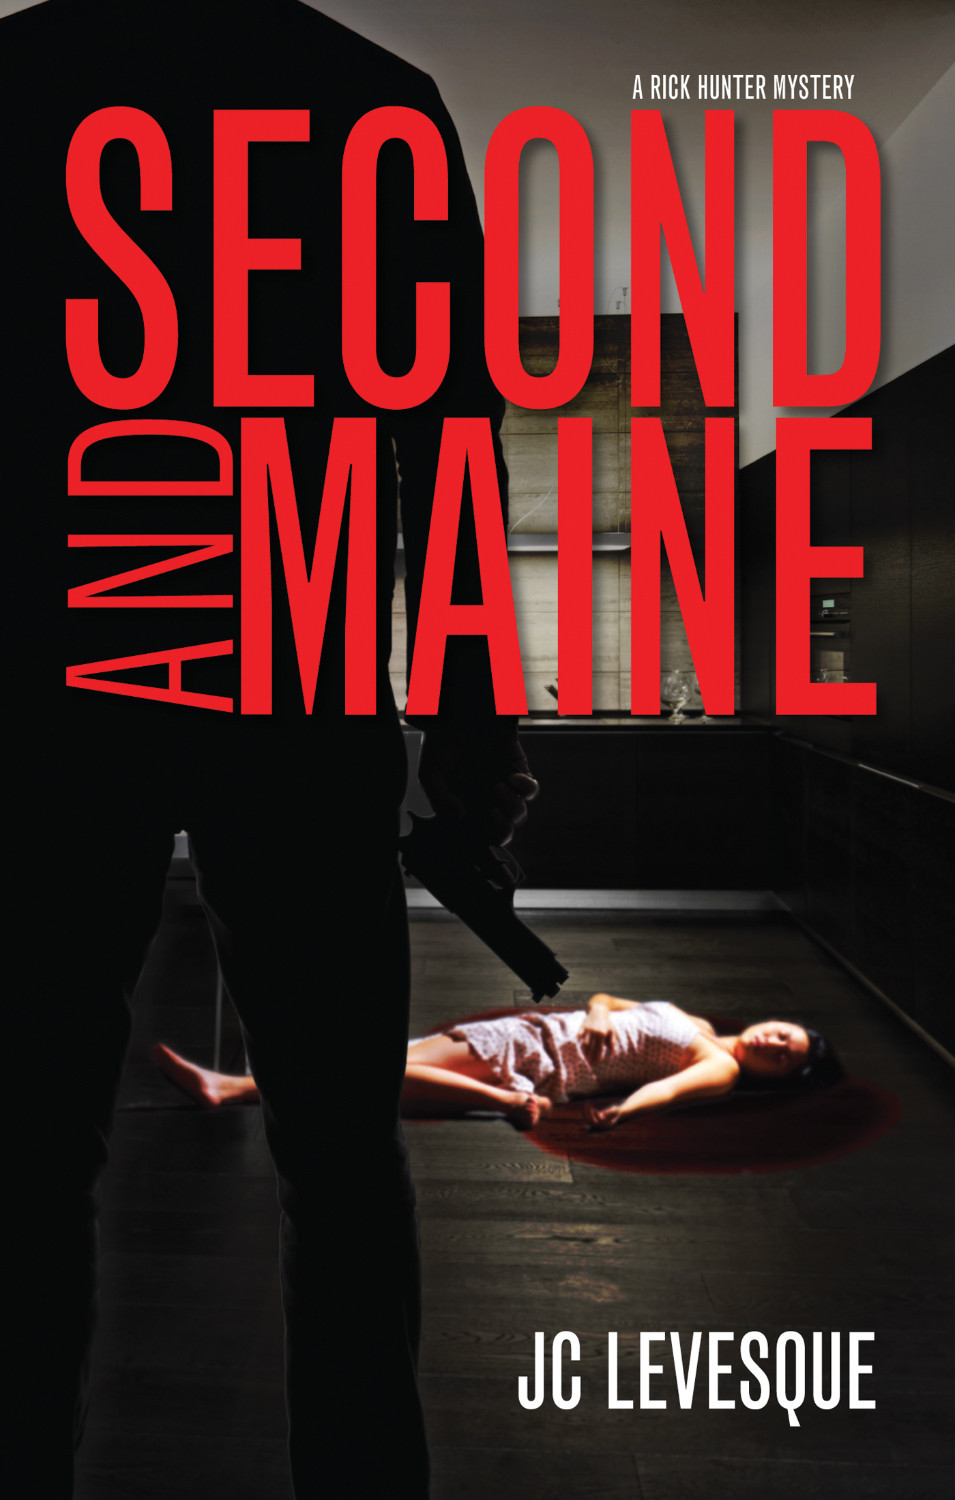 JCL_SecondAndMaine_Cover_Final_Web_RGB_1400x2200_535-103.jpg